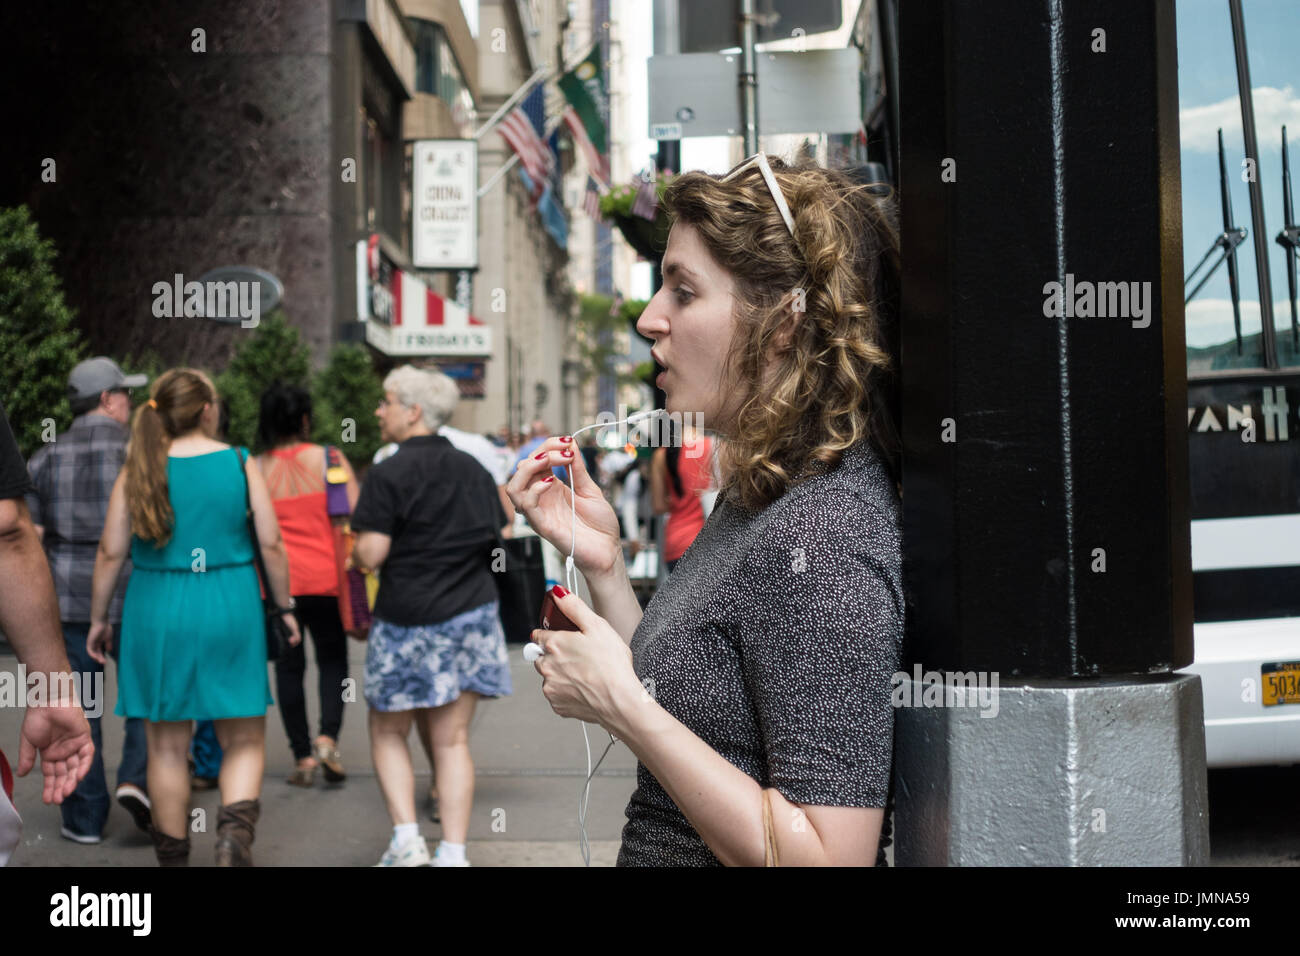 Young woman, with a curly hair, talking on the phone using headphone / earbuds, holding microphone piece in her hand, while standing on the street - Stock Image